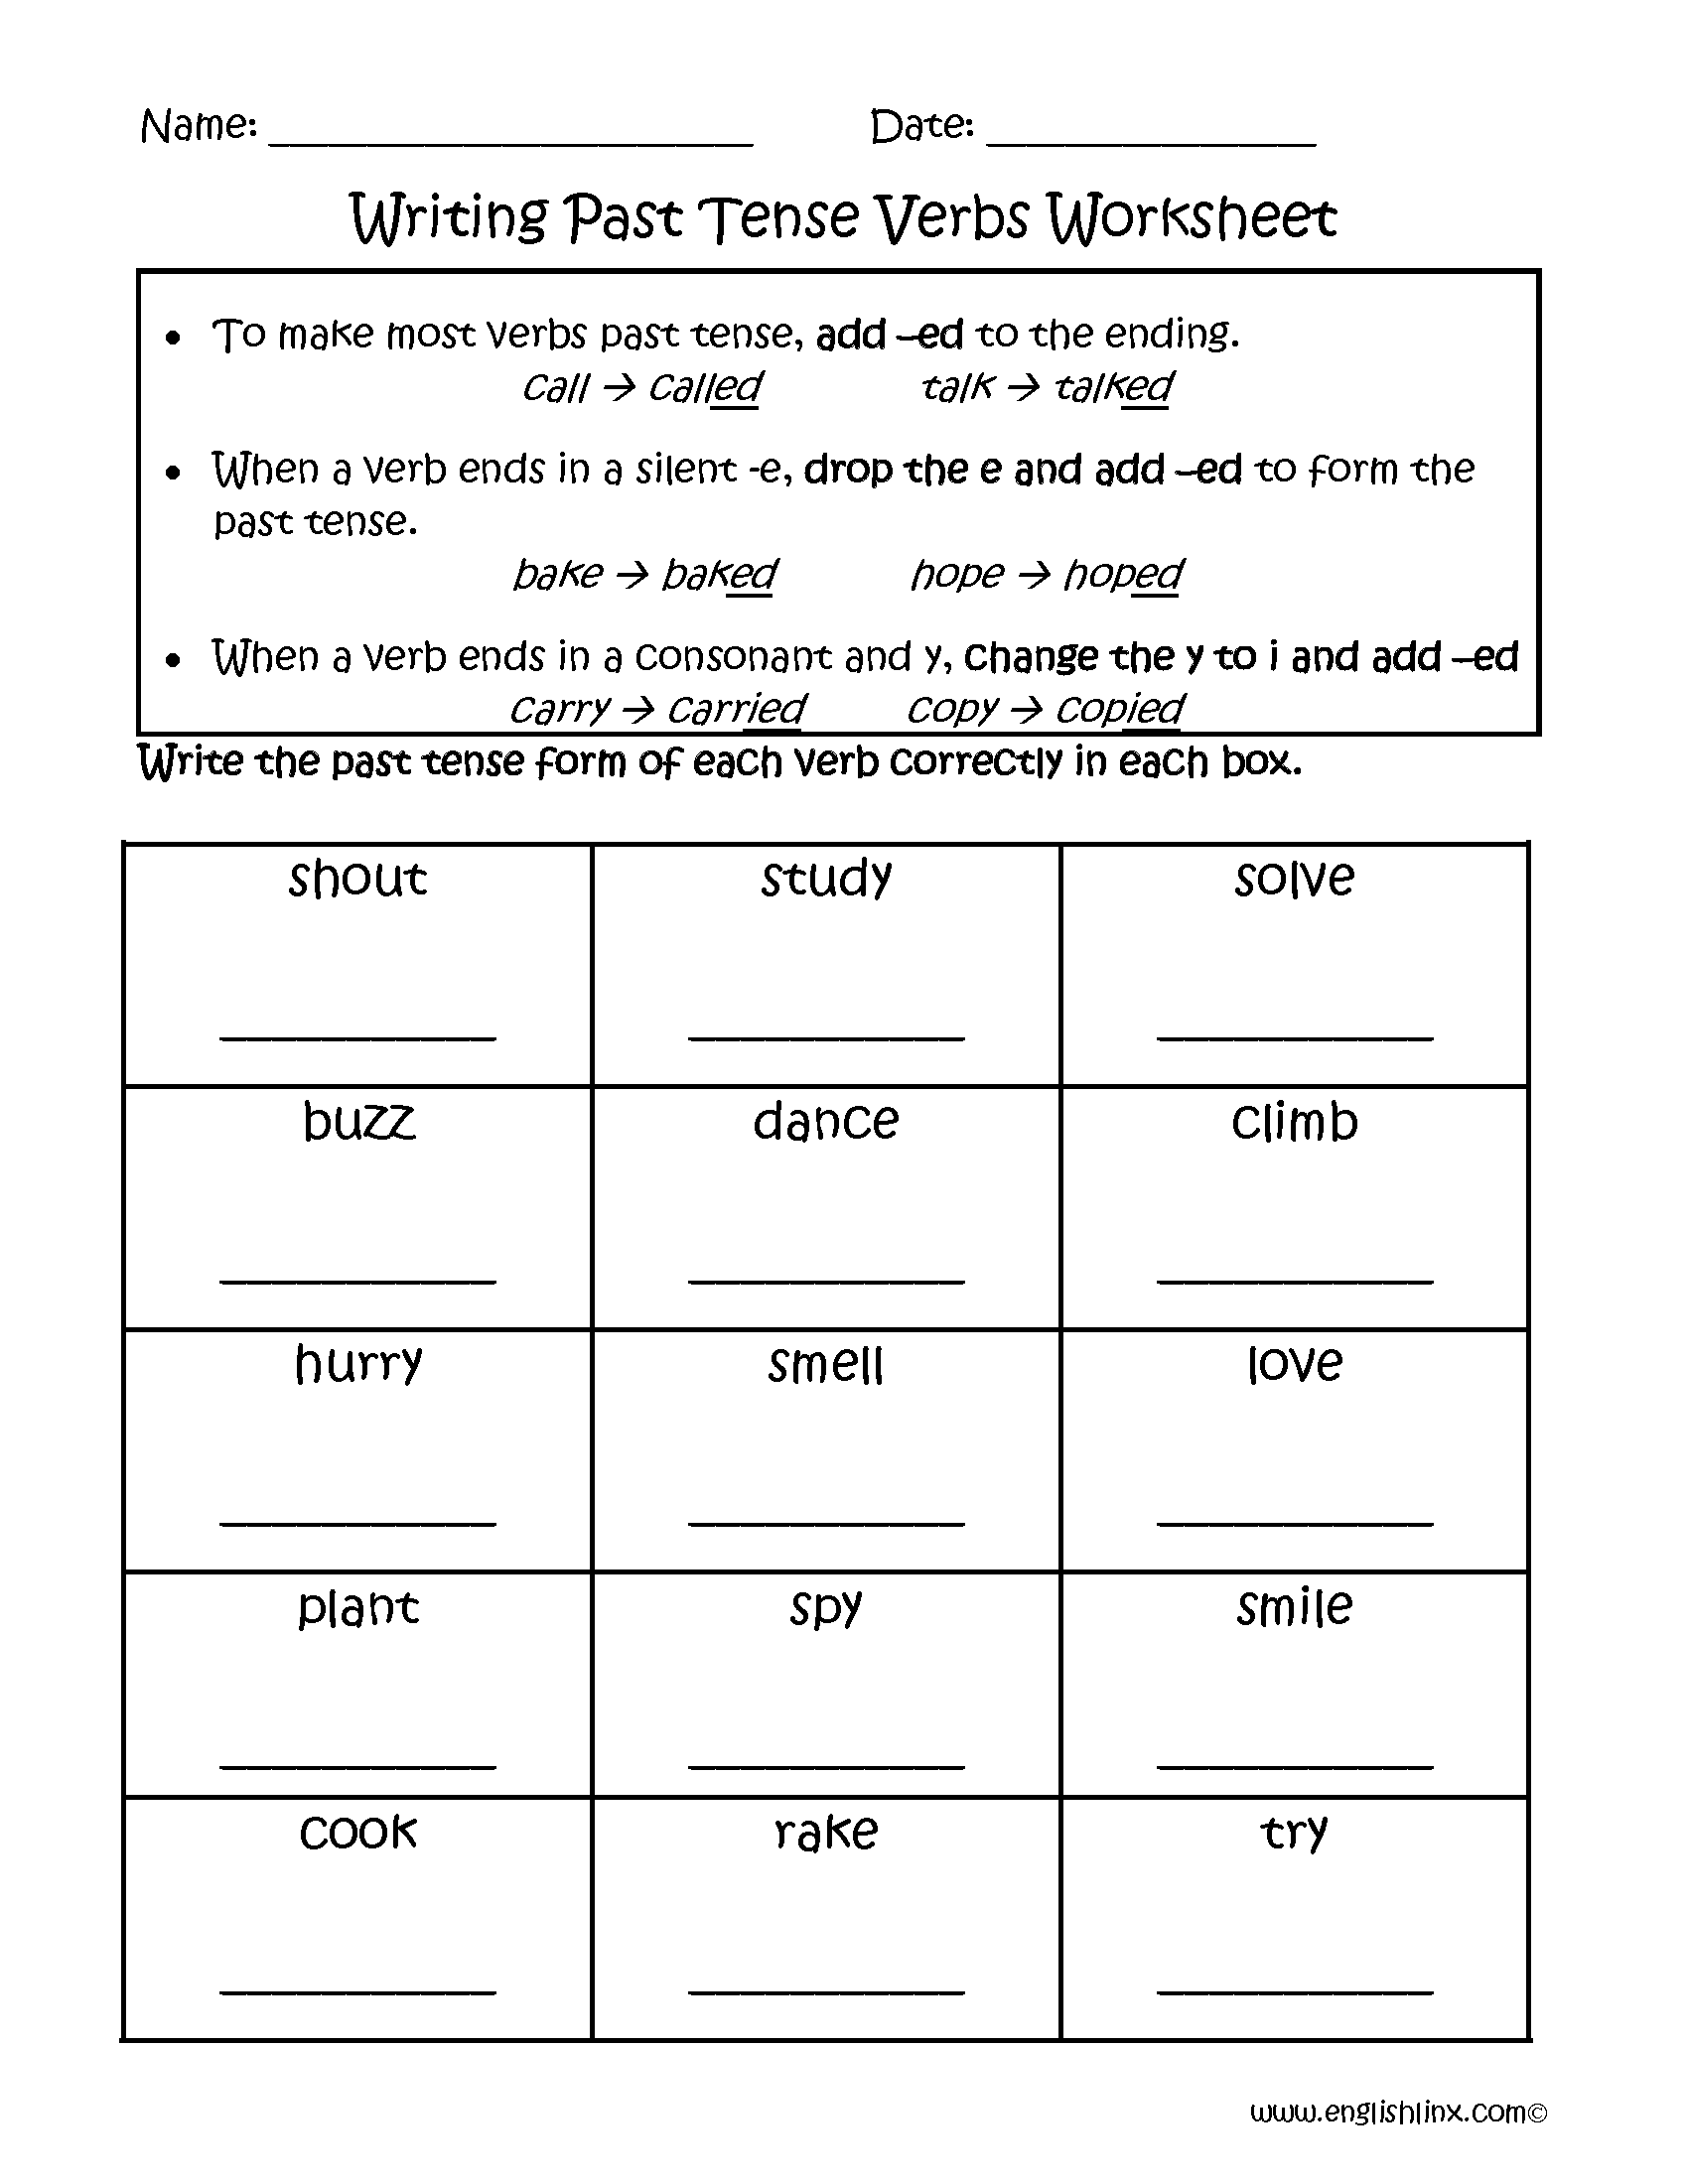 hight resolution of Writing Past Tense Verbs Worksheets   Verb worksheets